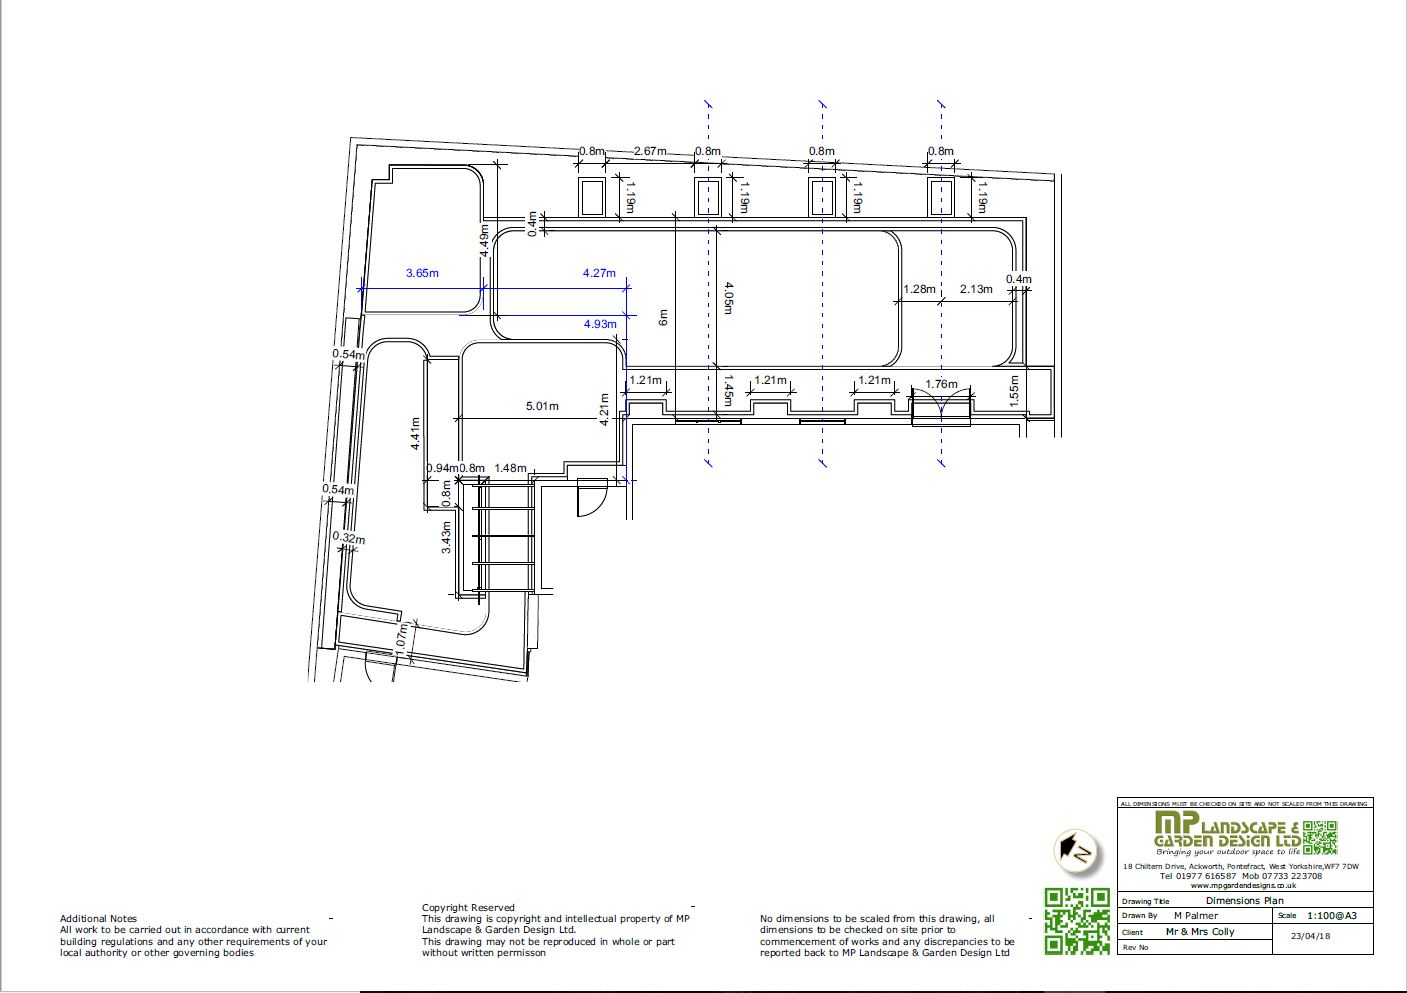 Garden layout dimensions plans for a rear garden in Wakefield, West Yorkshire.